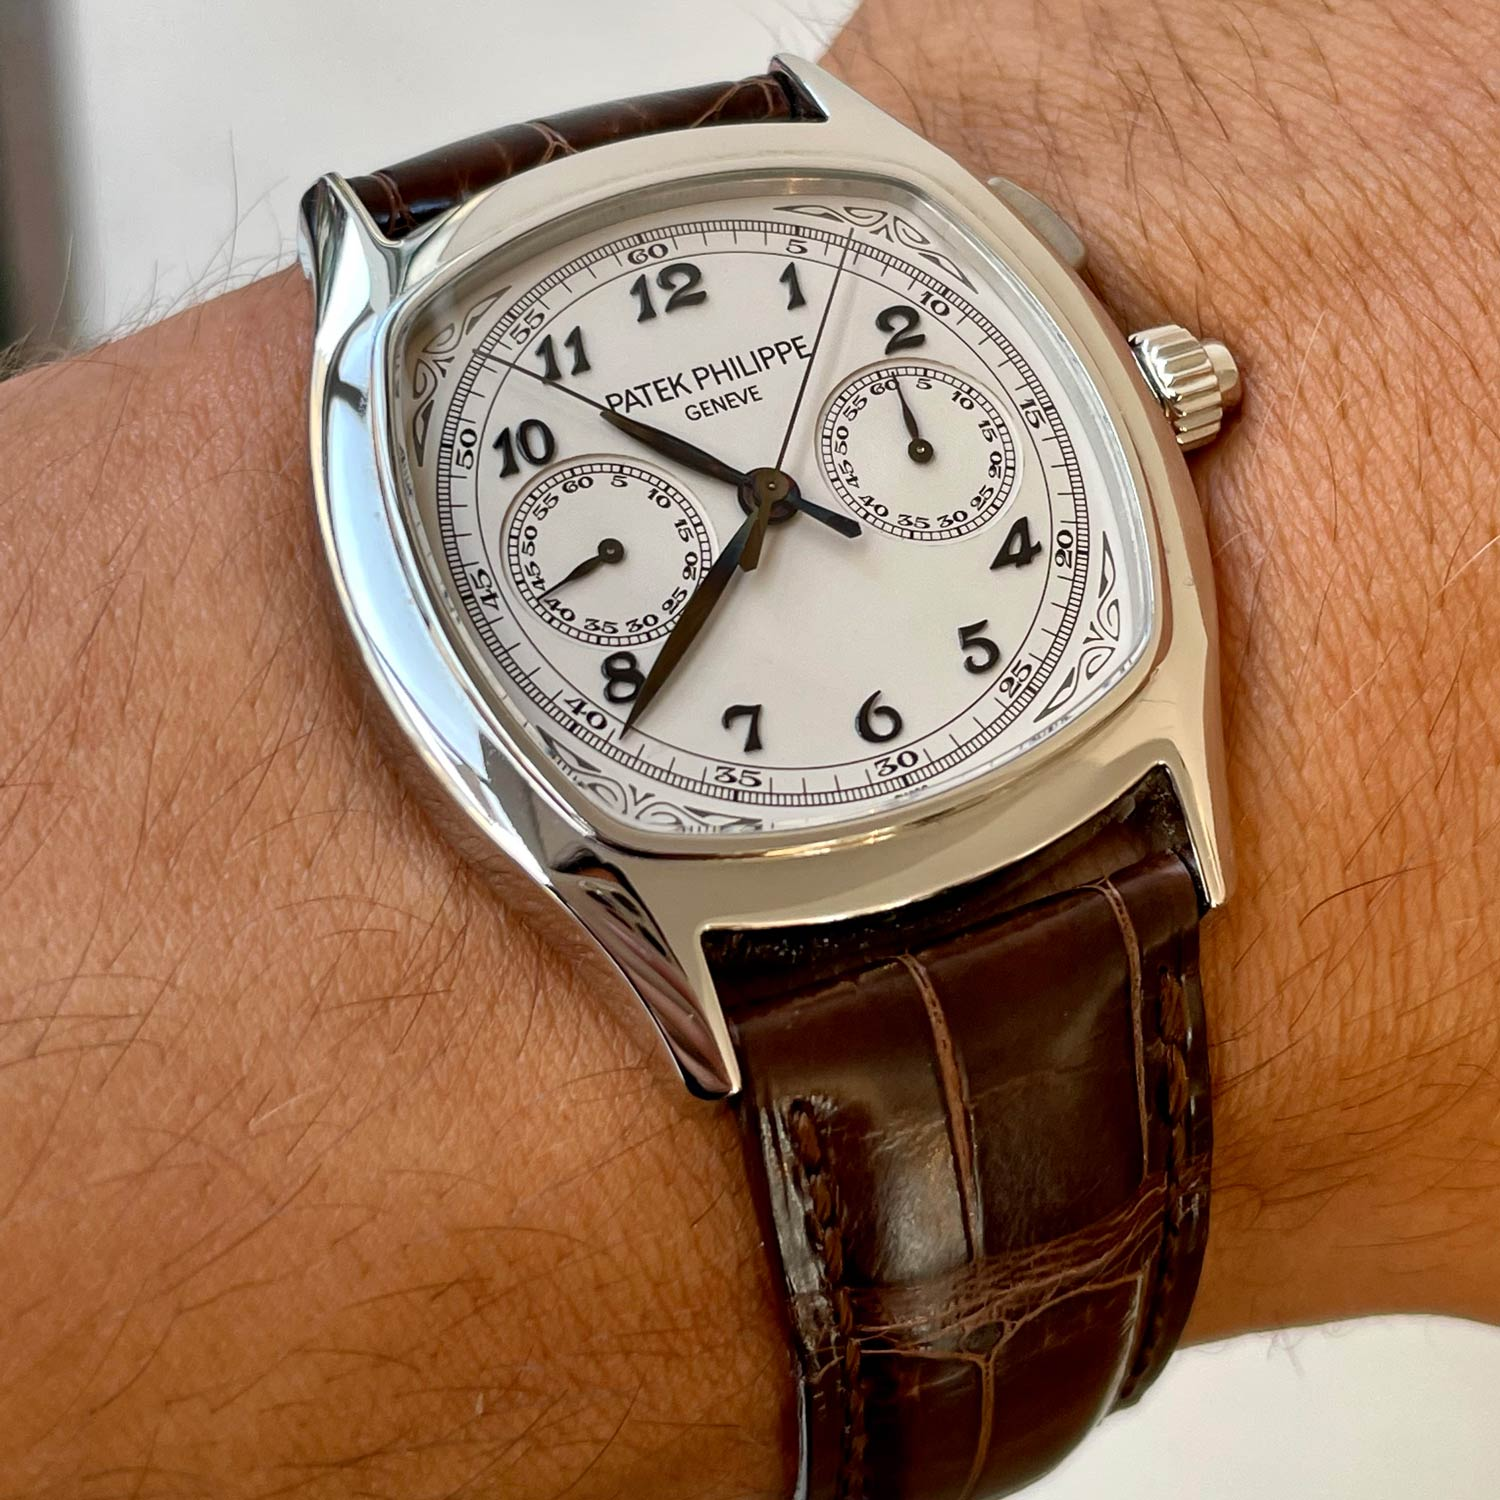 Lot 144 Patek Philippe: Extremely Fine and Rare Single Button Split Seconds Chronograph Wristwatch in Stainless Steel, Reference 5950, with Original Certificate of Origin, Accessories and Original Boxes